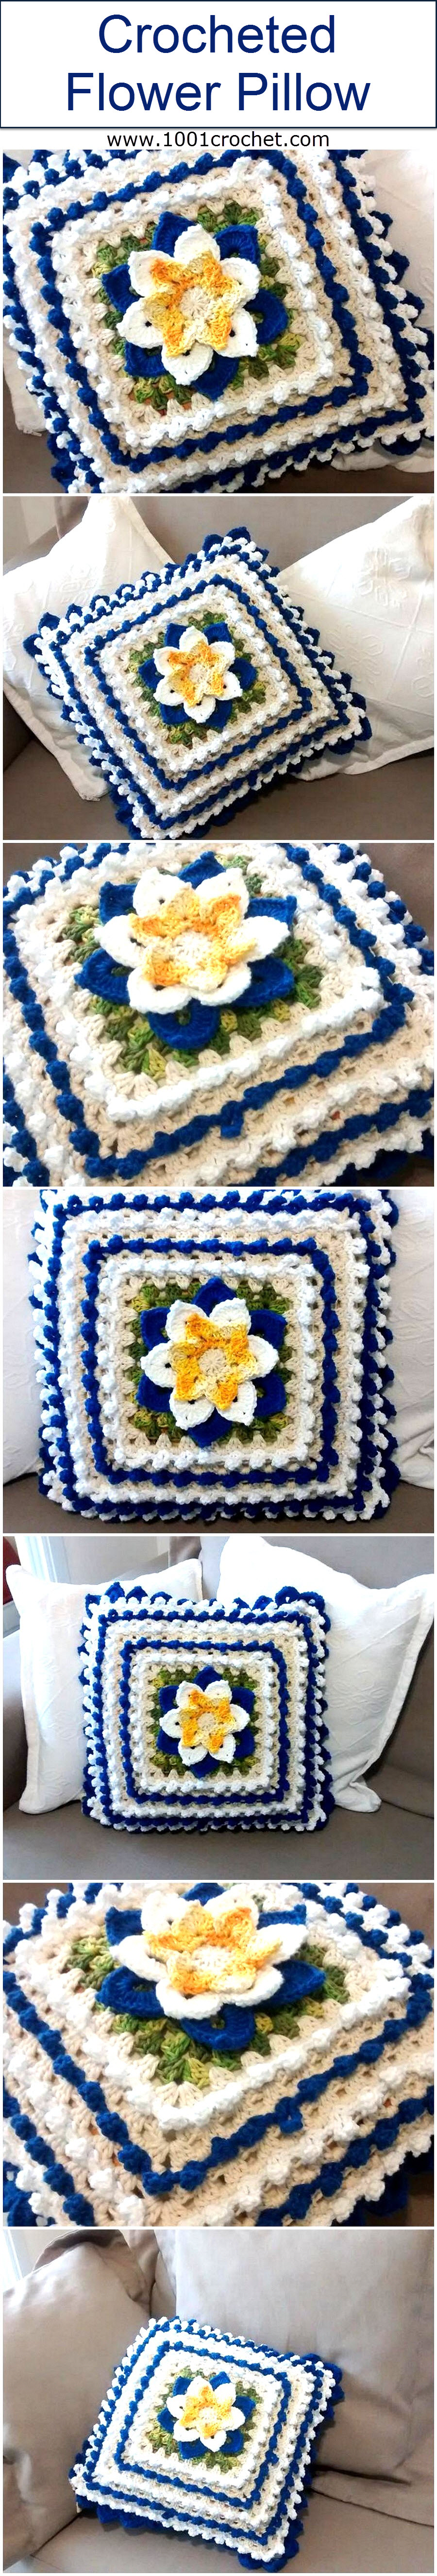 crocheted-flower-pillow